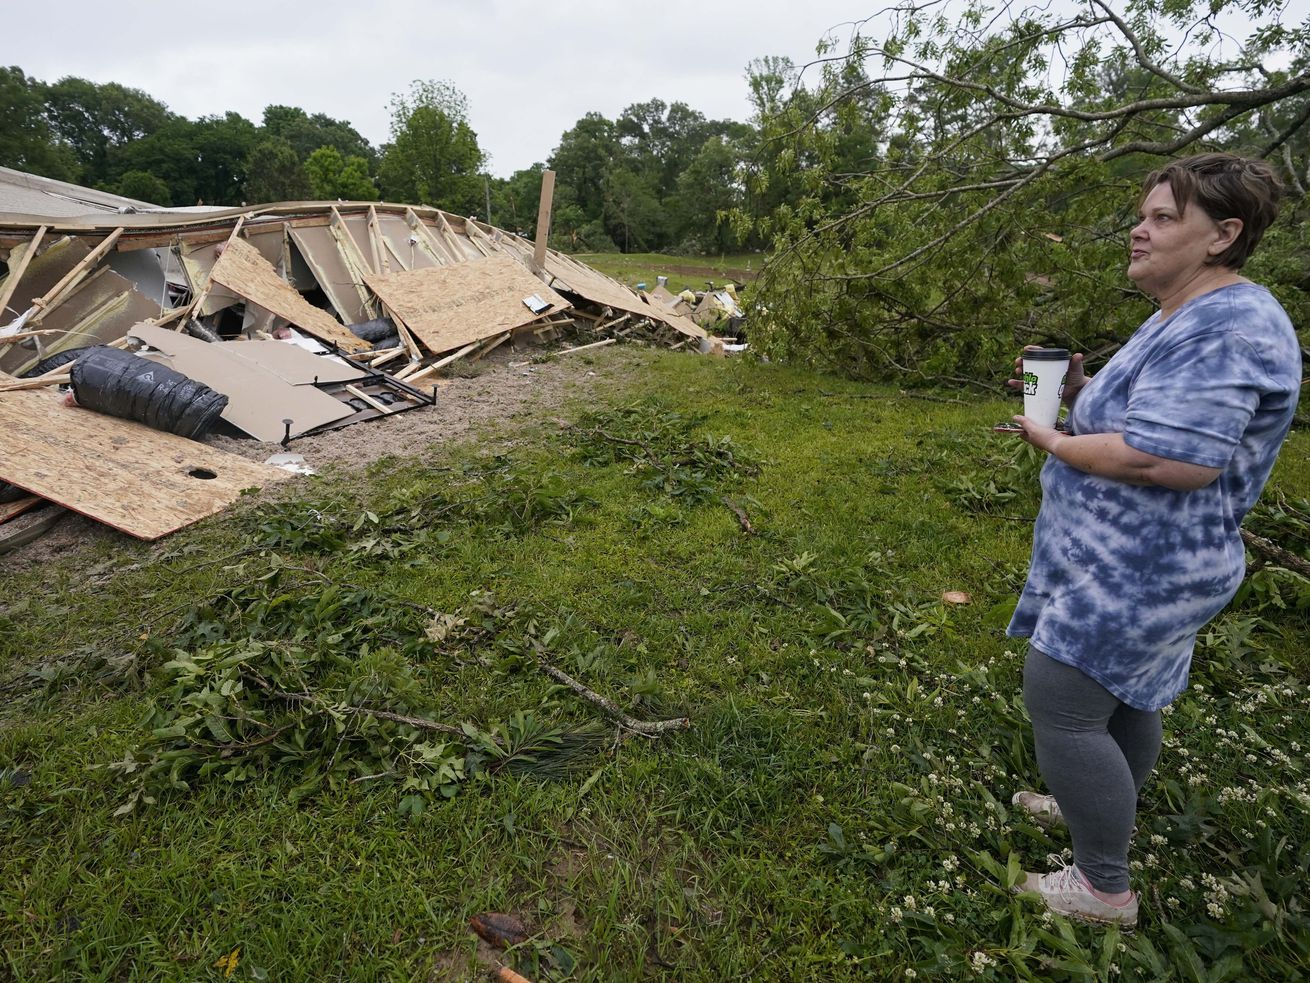 Vickie Savell looks at the remains of her new mobile home early Monday, May 3, 2021, in Yazoo County, Miss. Multiple tornadoes were reported across Mississippi on Sunday, causing some damage but no immediate word of injuries.